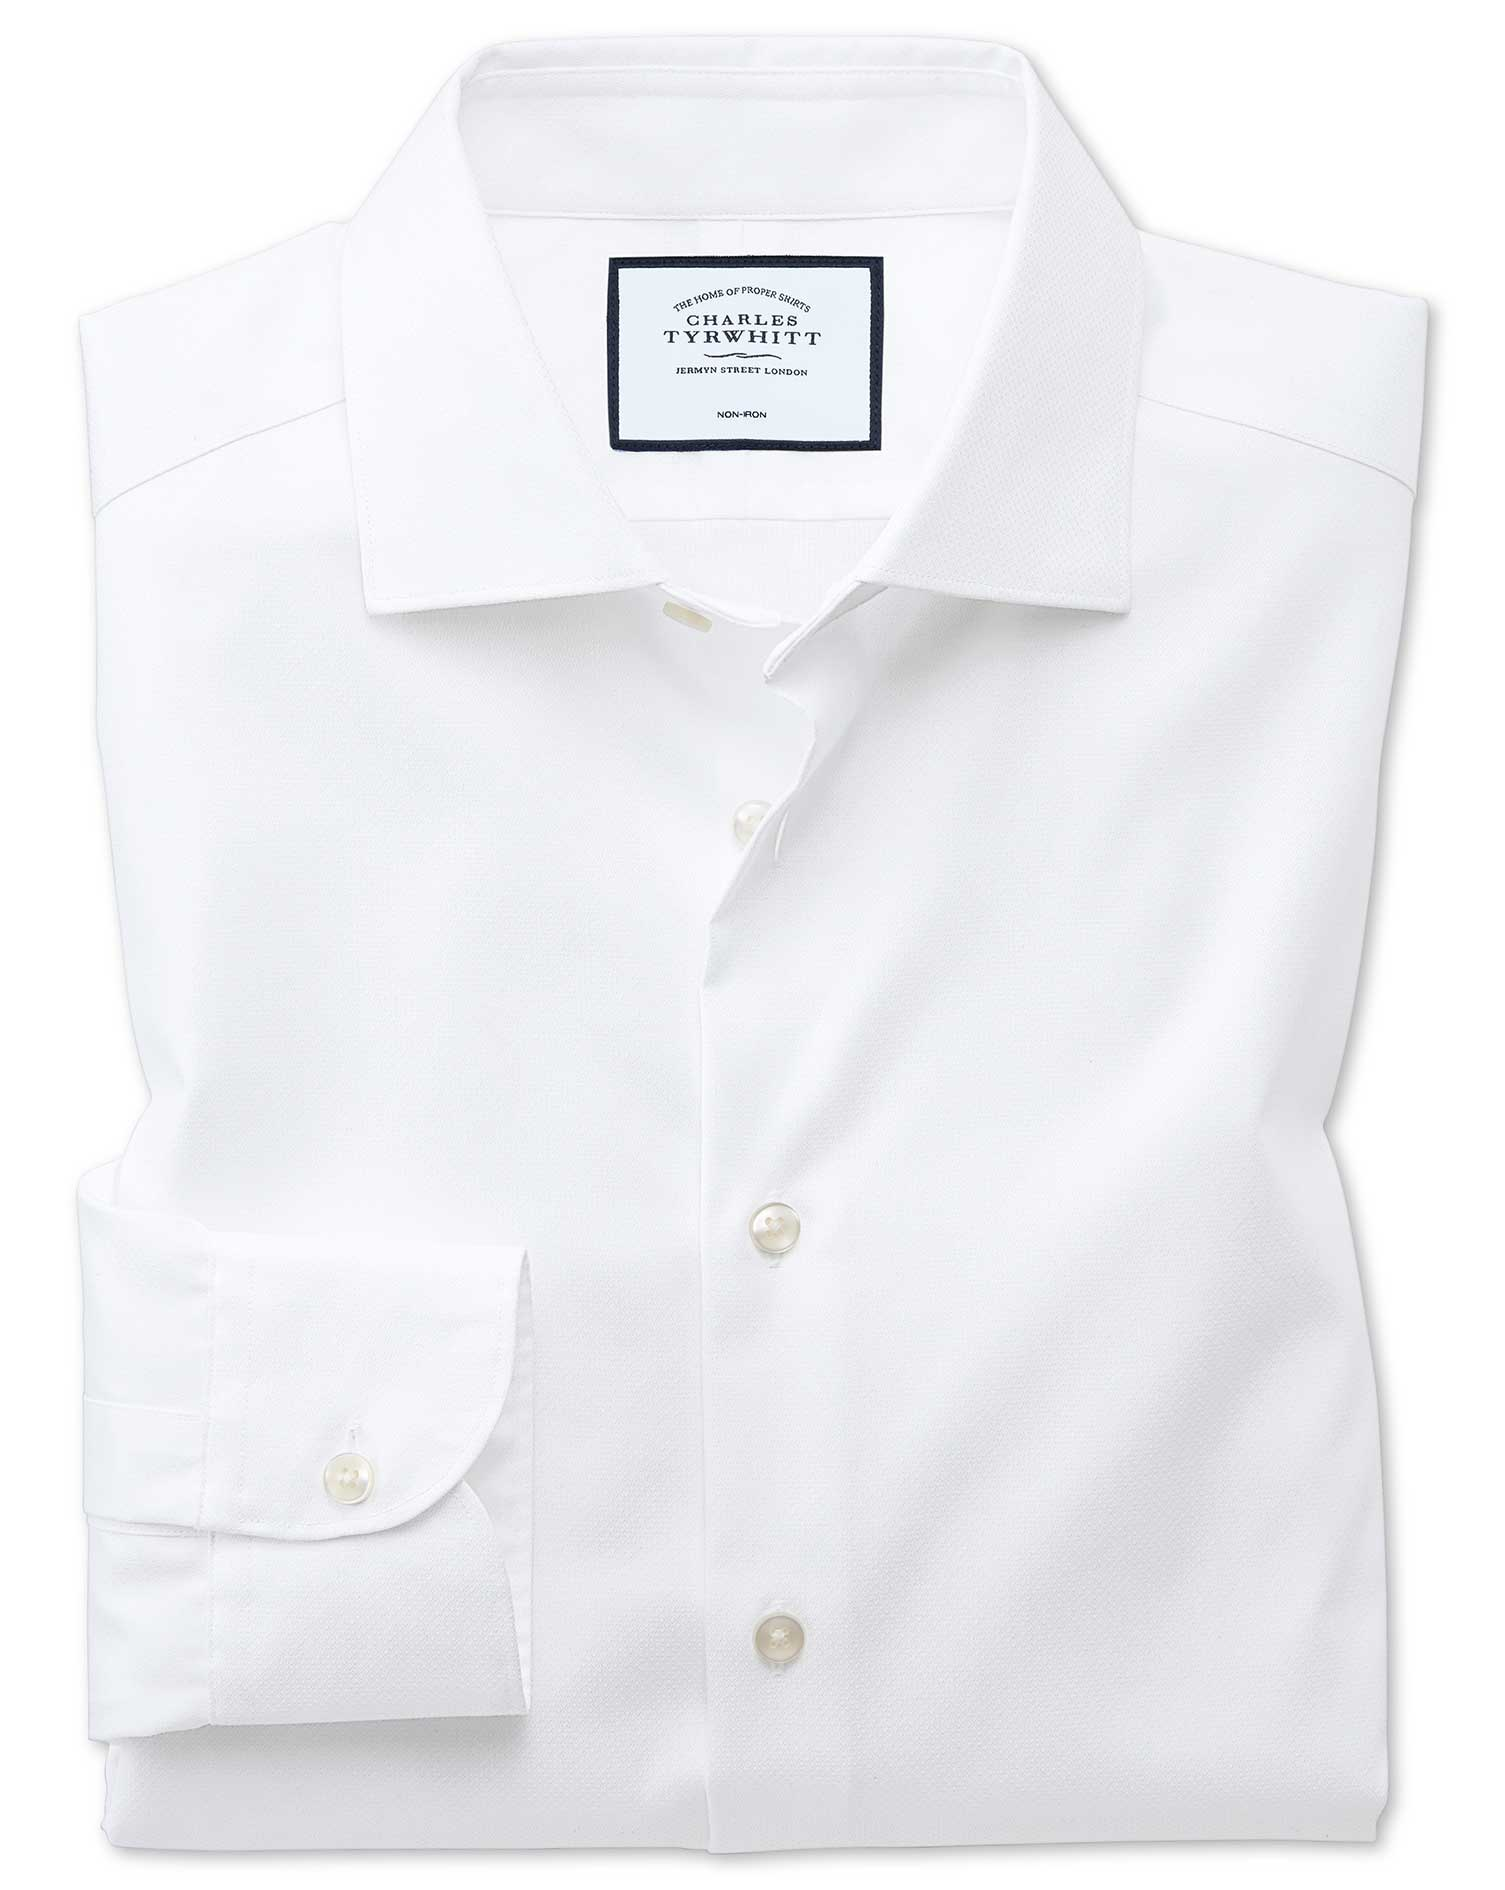 Slim Fit Semi-Cutaway Business Casual Non-Iron Modern Textures White Cotton Formal Shirt Single Cuff Size 16/35 by Charles Tyrwhitt from Charles Tyrwhitt